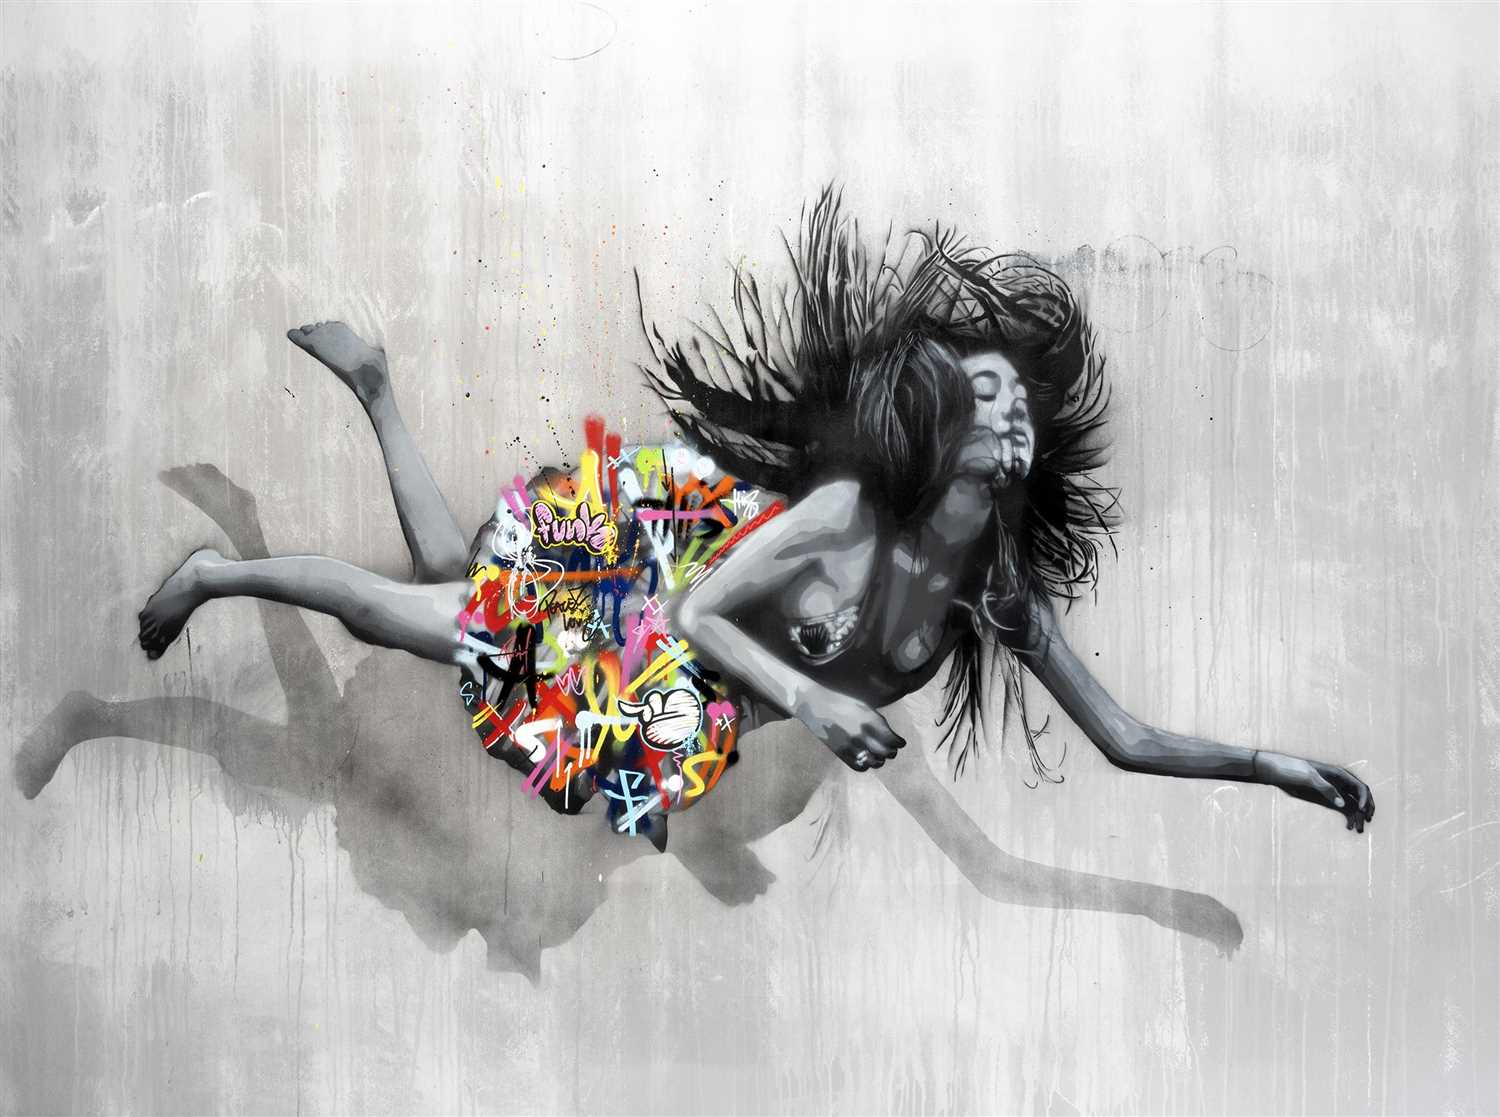 421 - Martin Whatson & Snik (Collaboration), 'Falling Girl', 2016